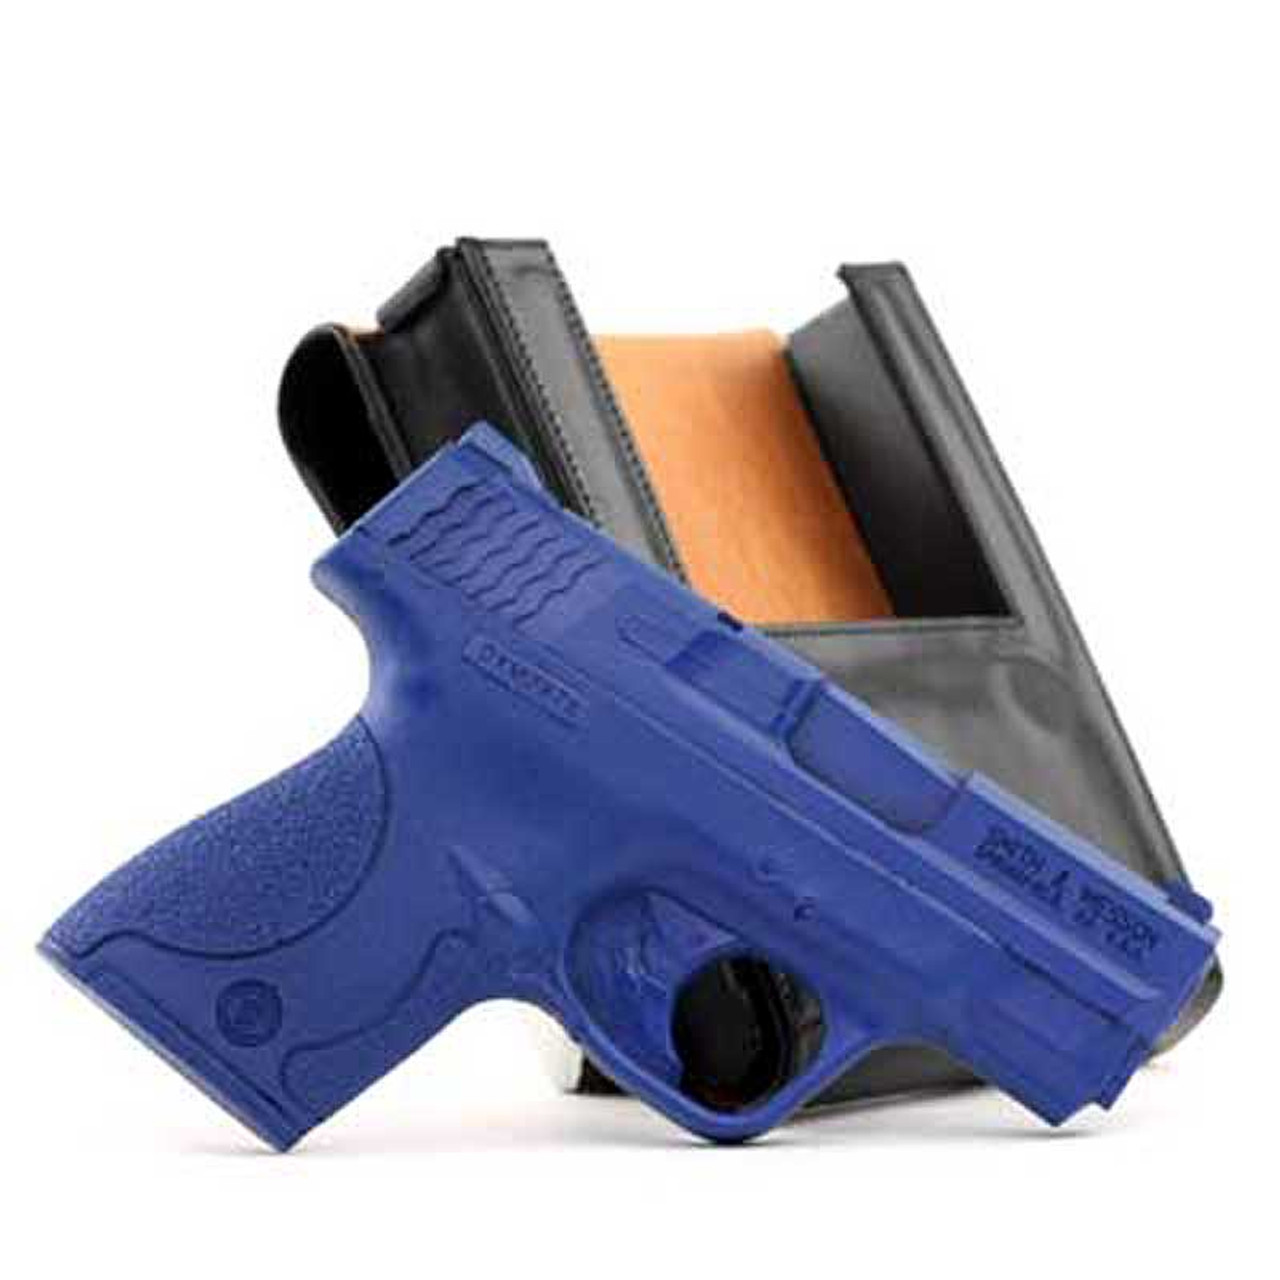 M&P Shield 9mm Holster